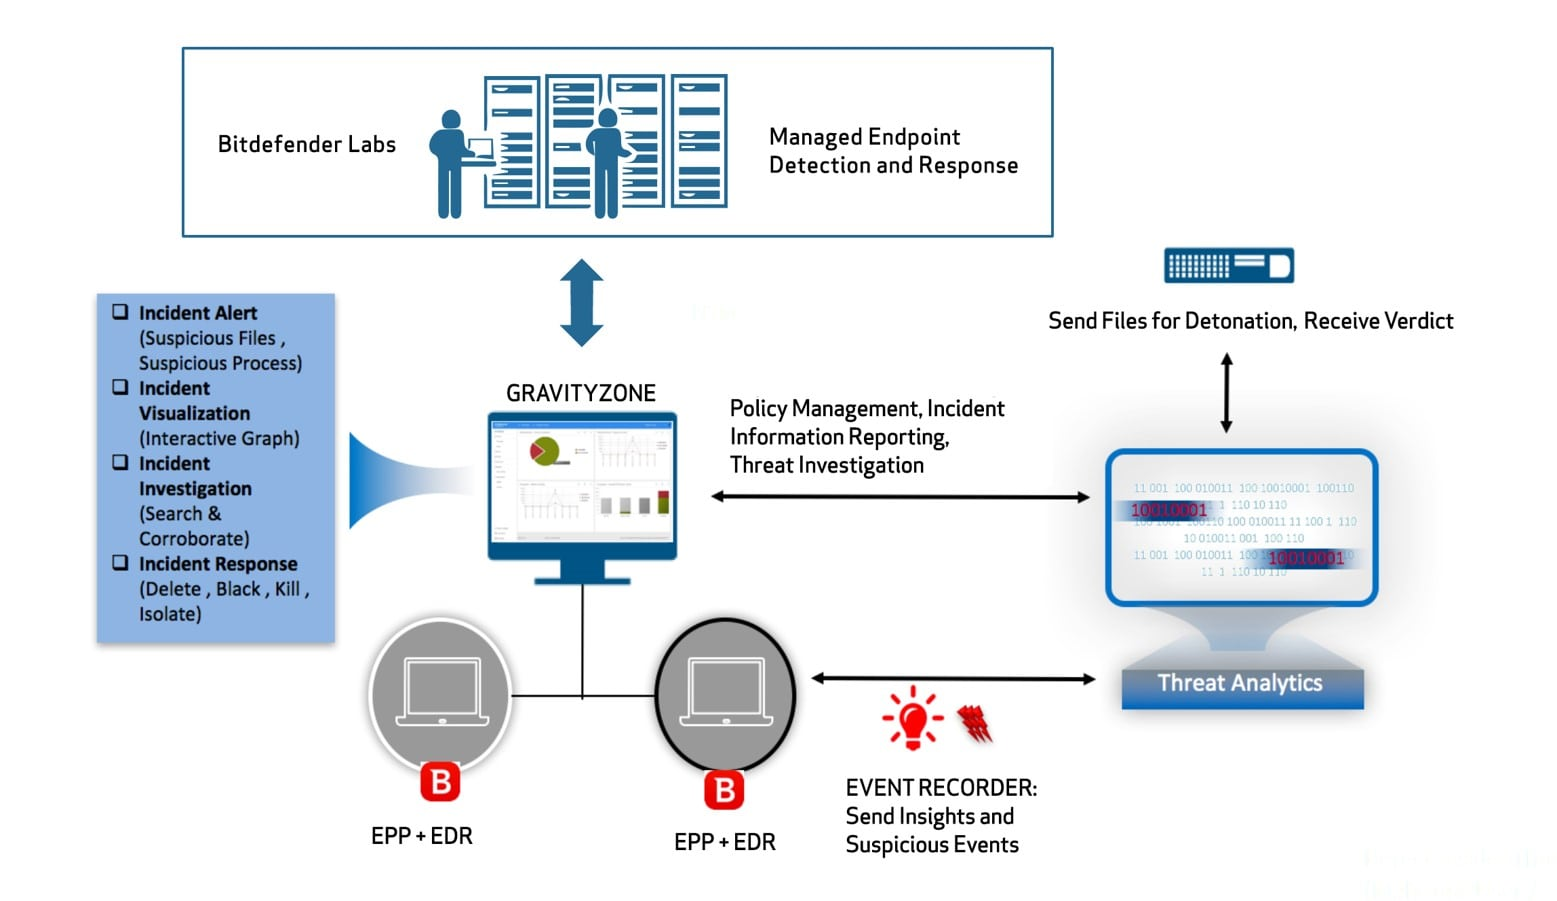 Managed Endpoint Detection and Response Architecture